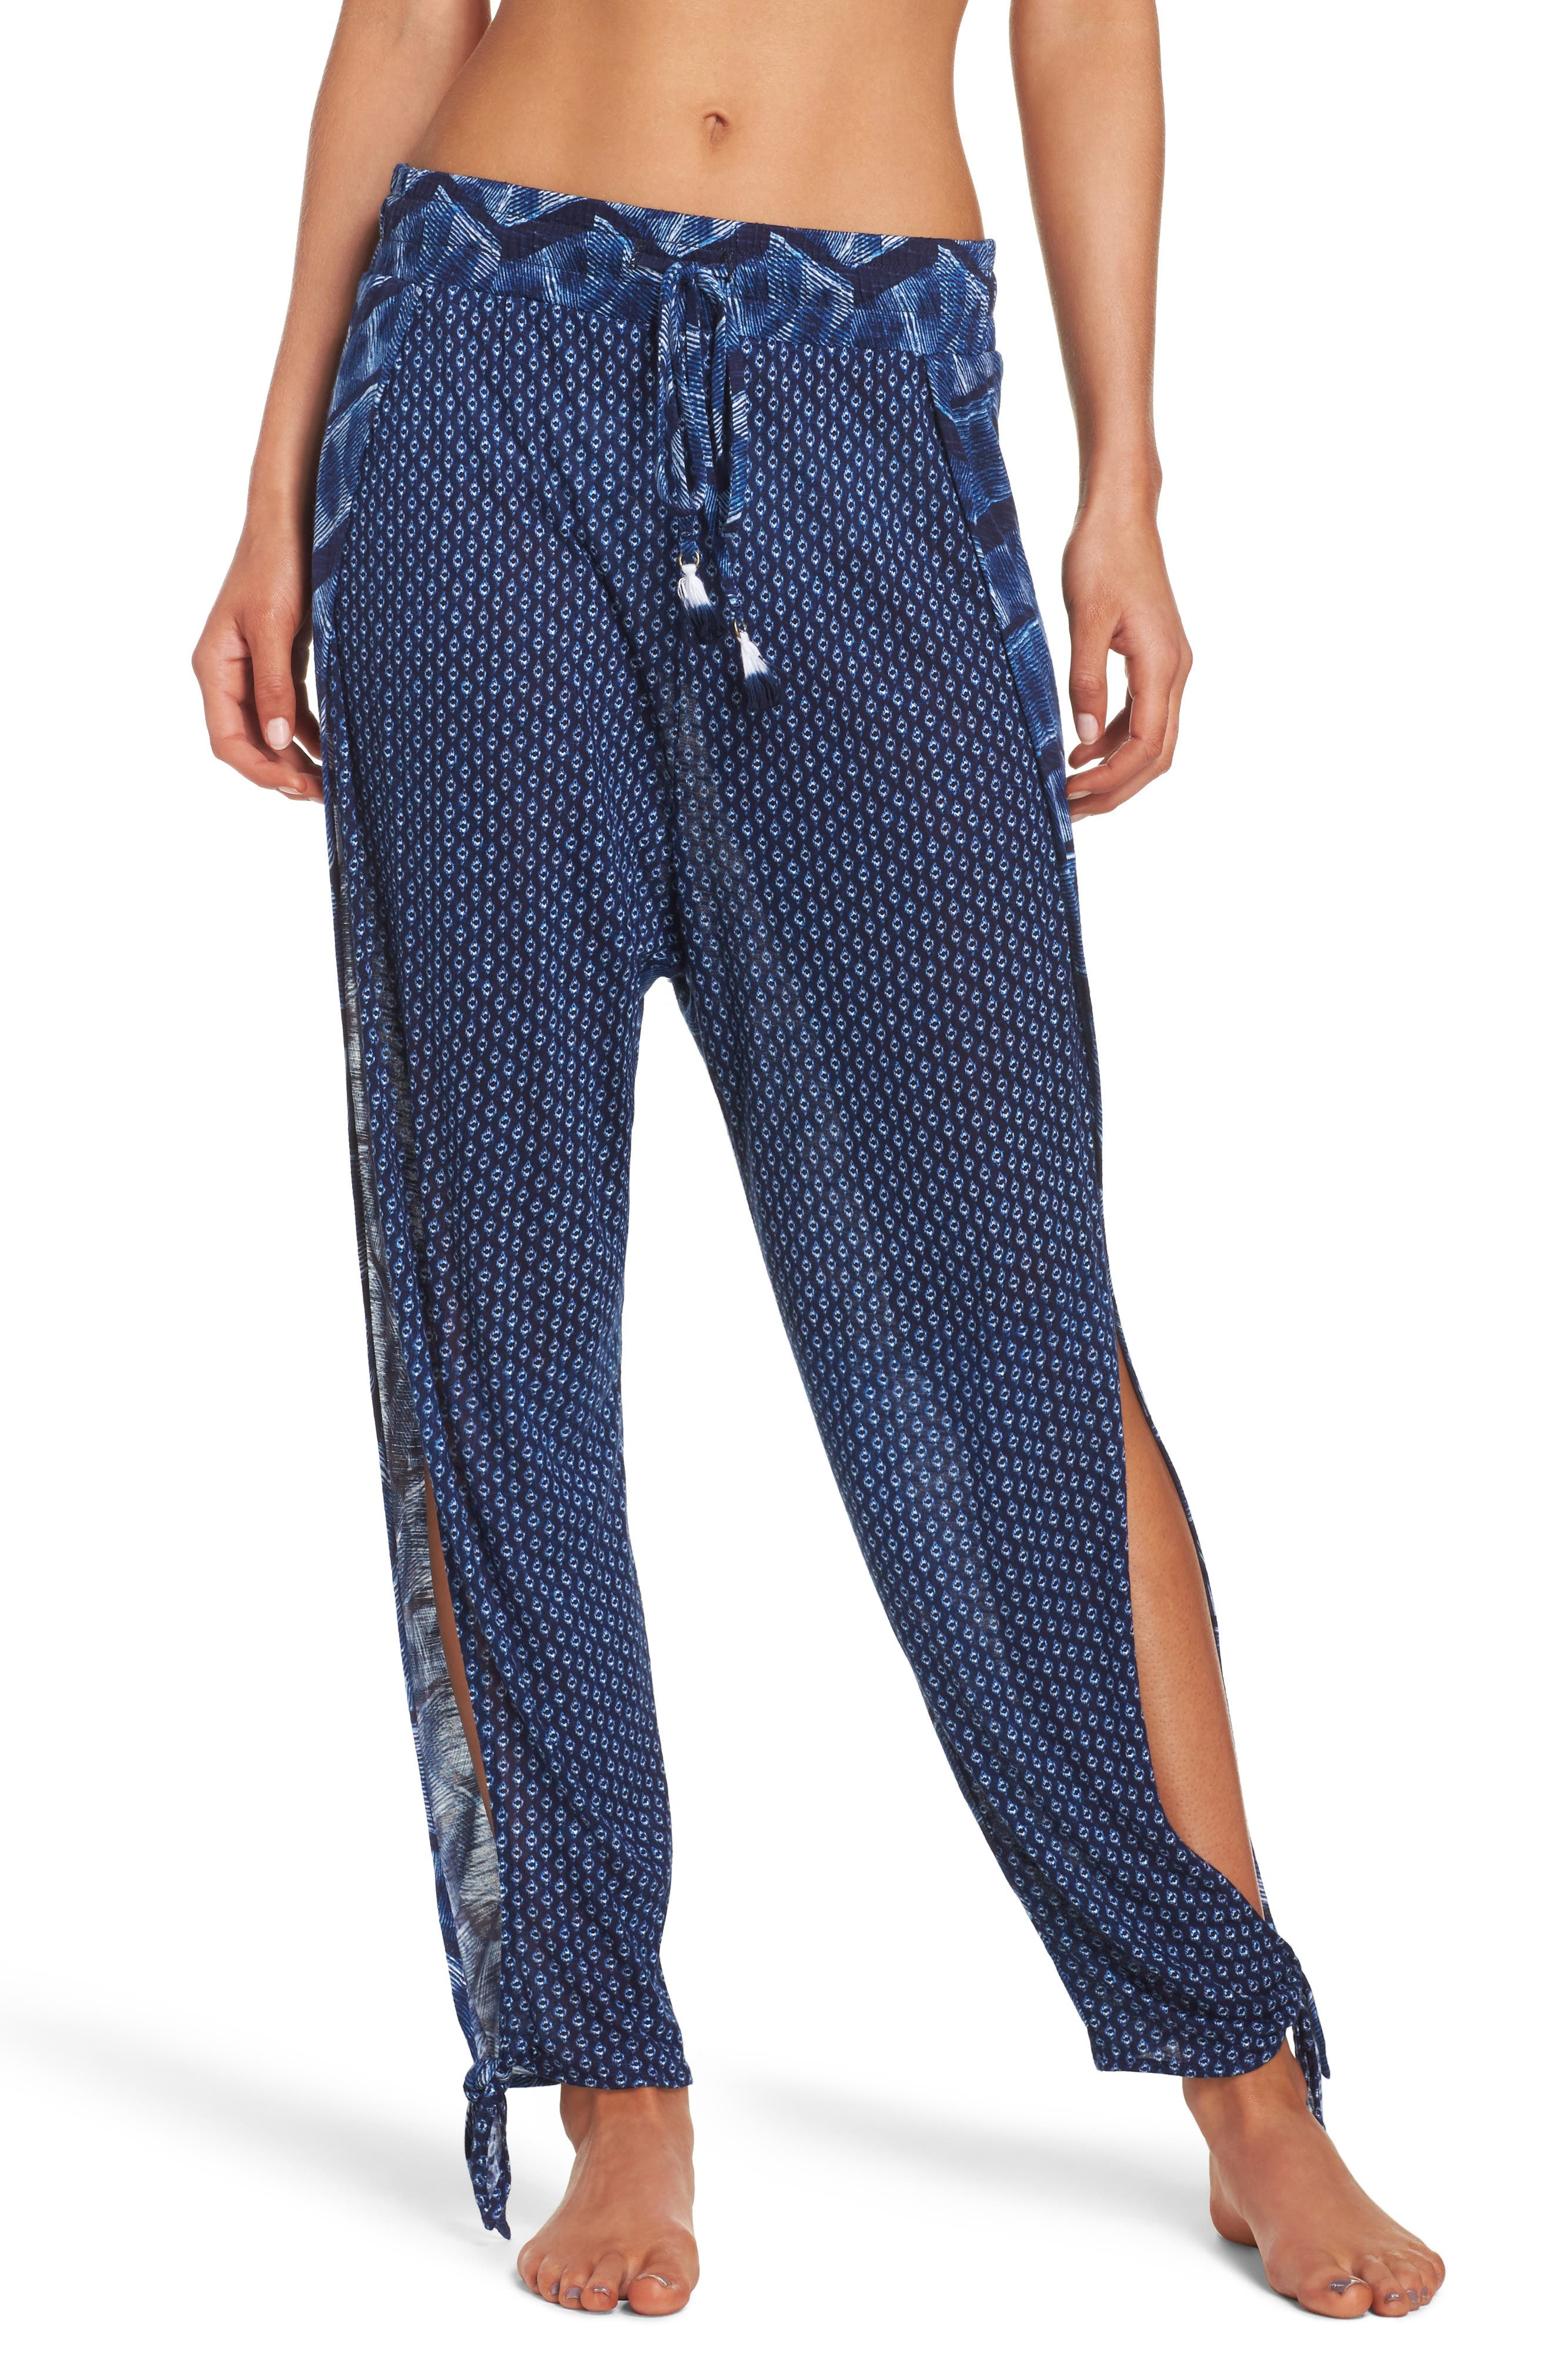 Nomad Ankle Tie Cover-Up Pants,                         Main,                         color, 410